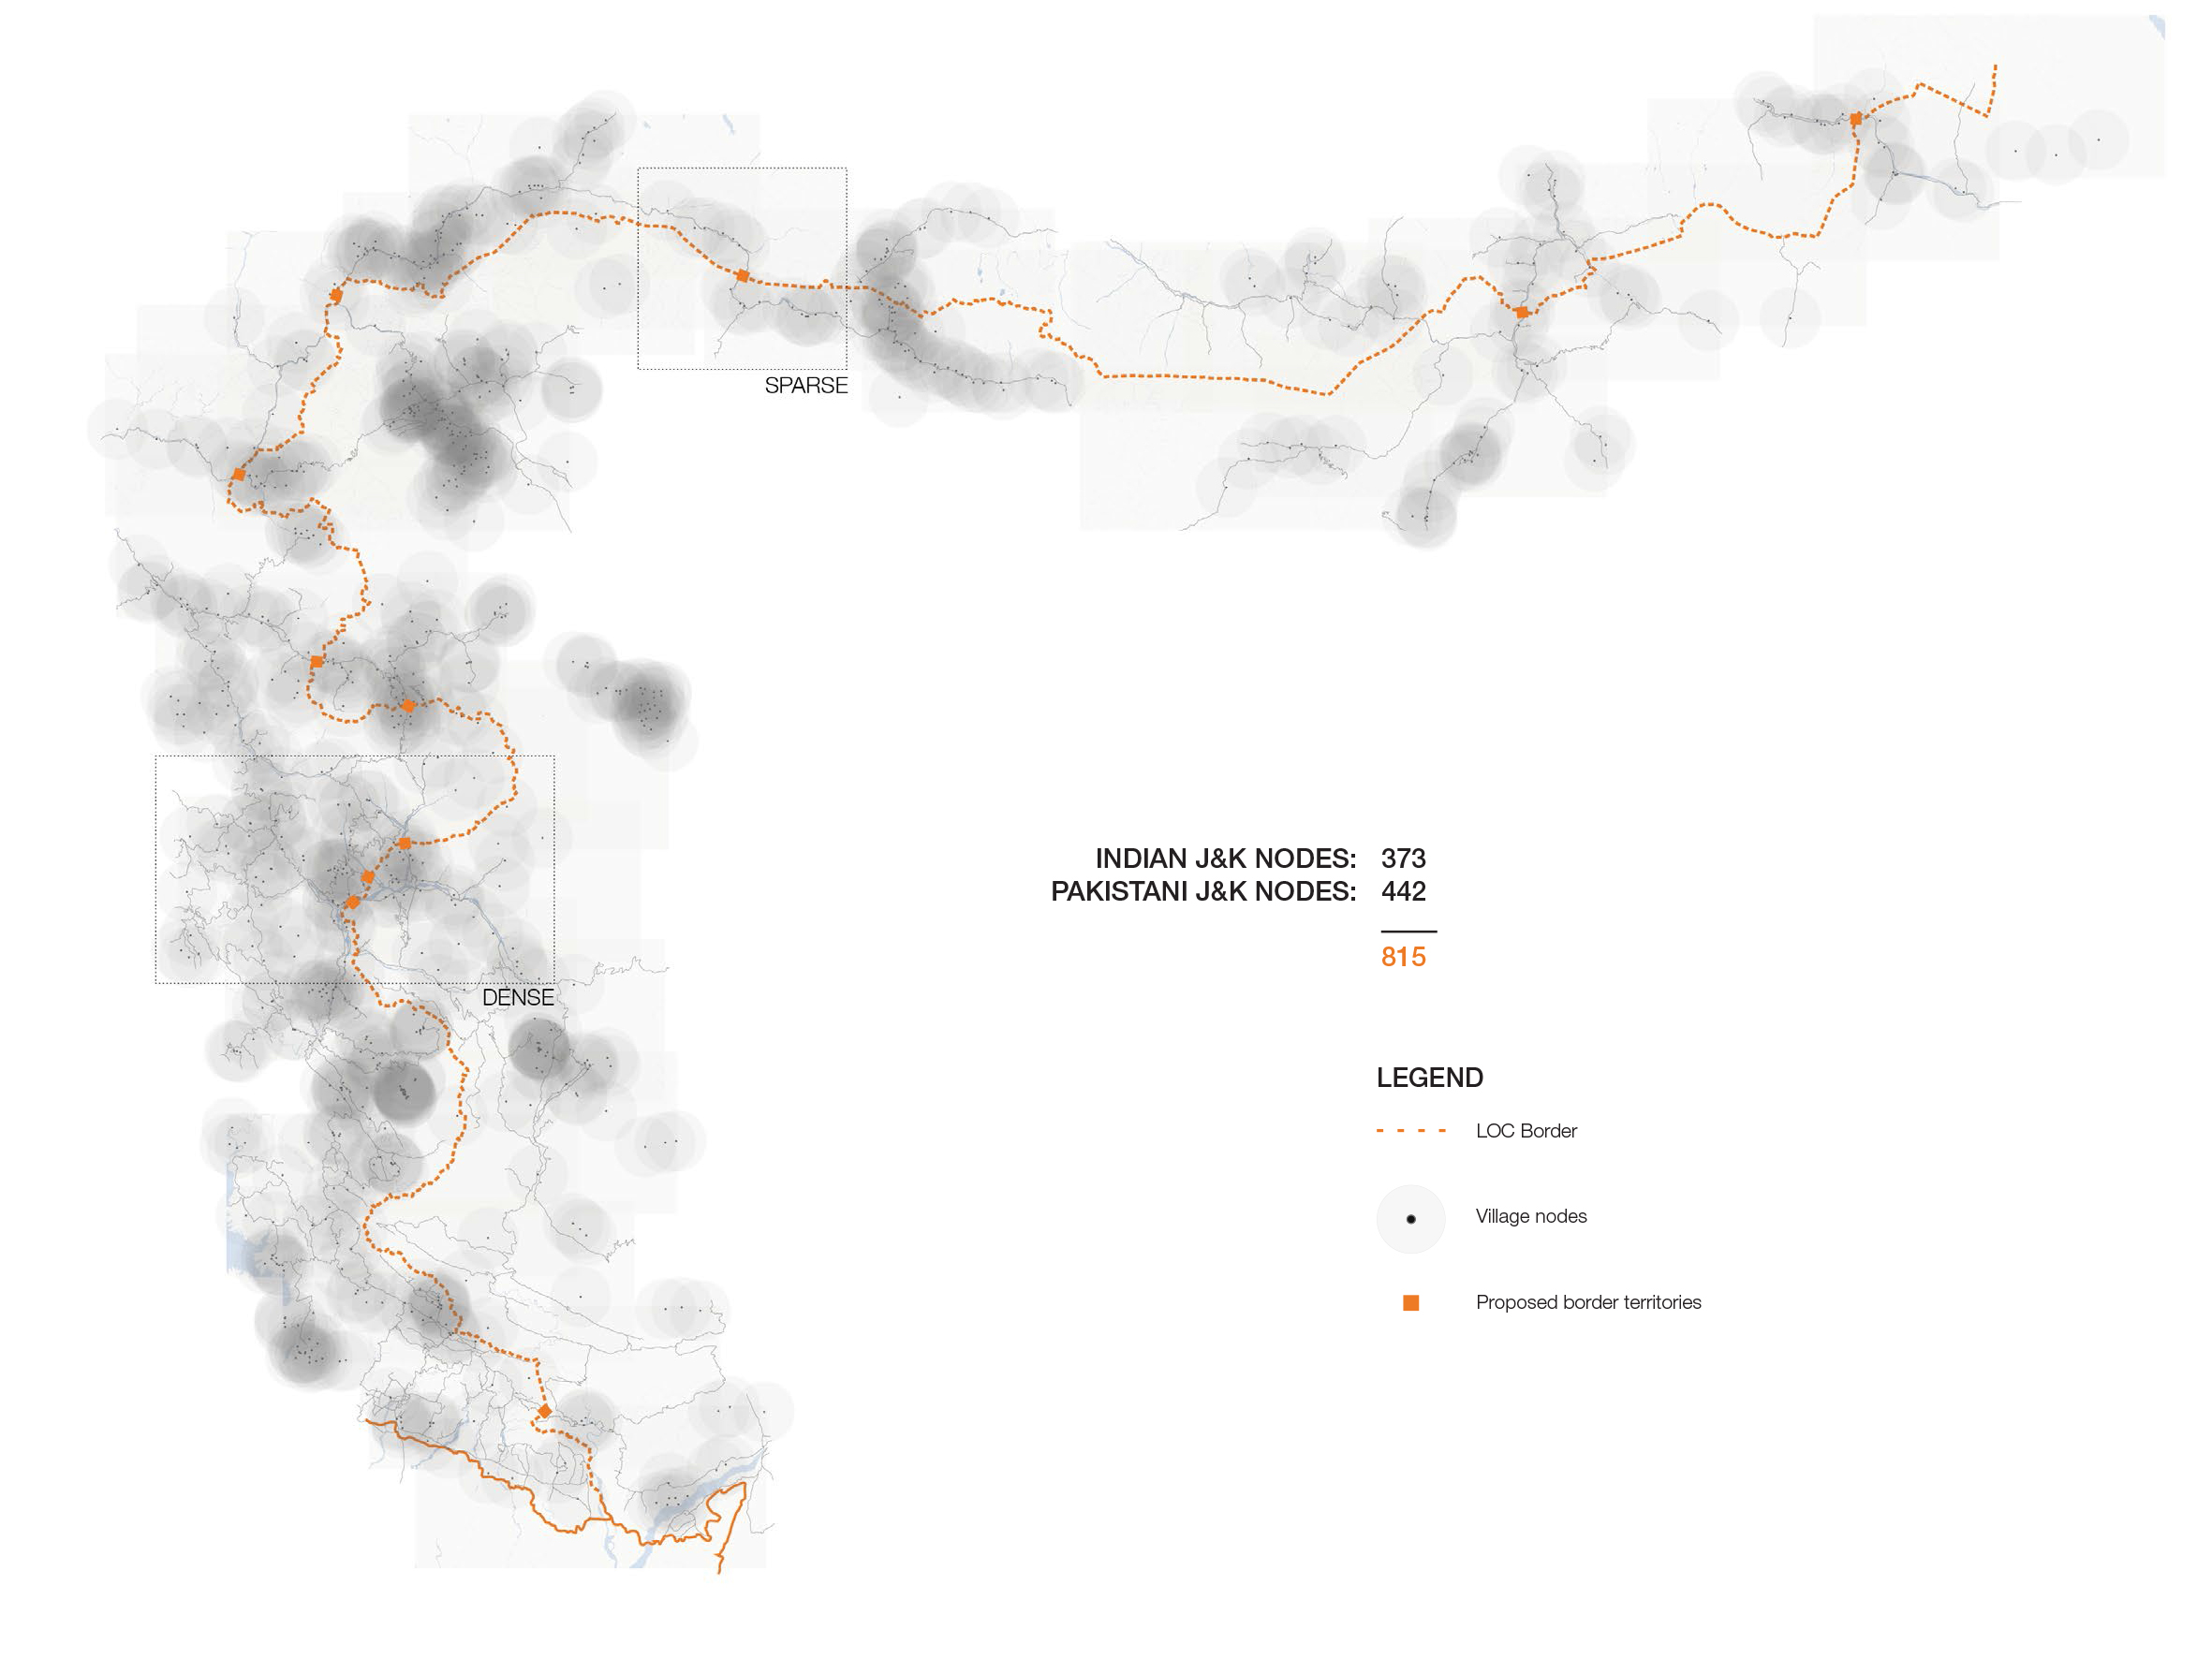 Figure 3. Proposed border typology mapping rural nodes that will build the new border network.